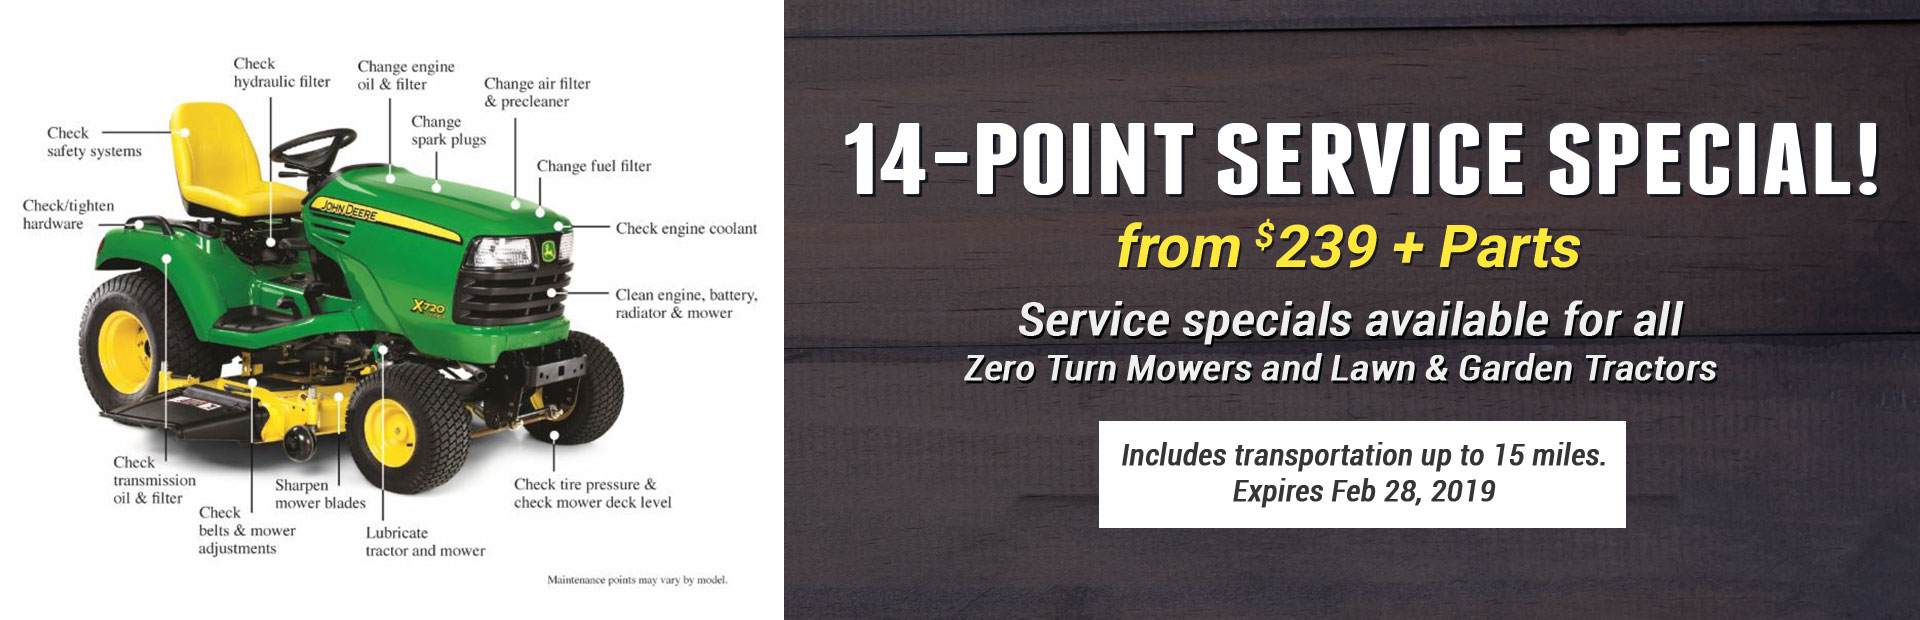 14-Point Tractor Service Special